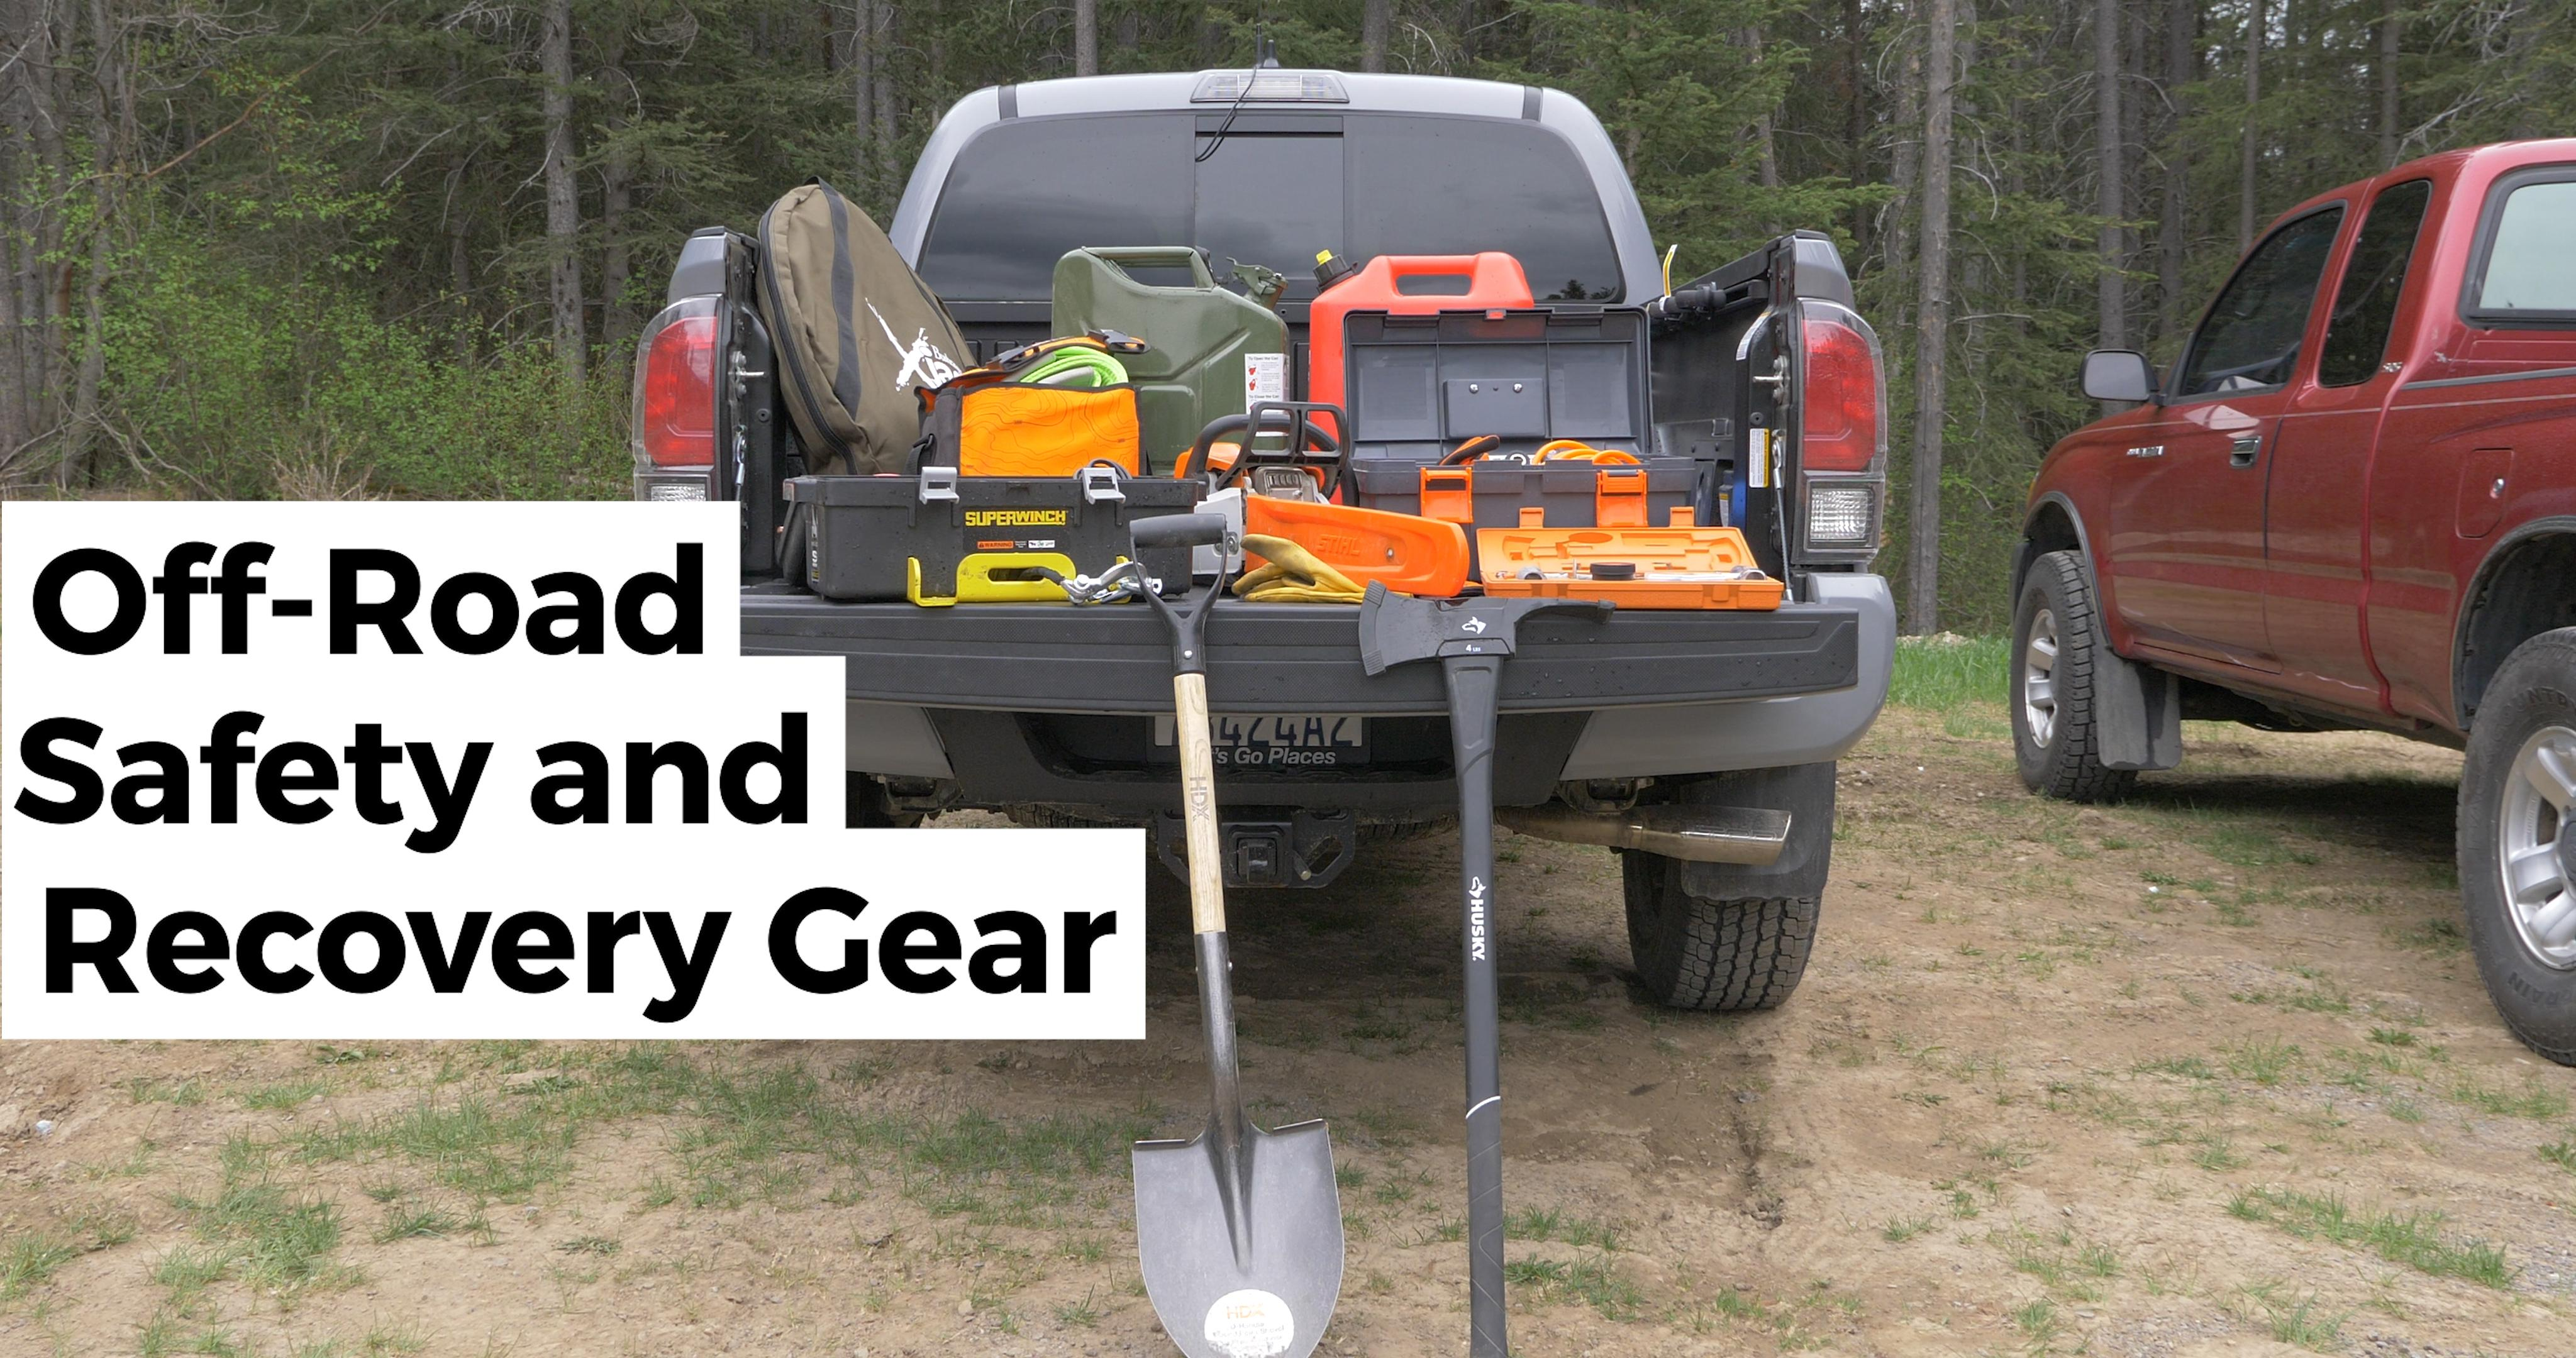 Off-Road Safety and Recovery Gear